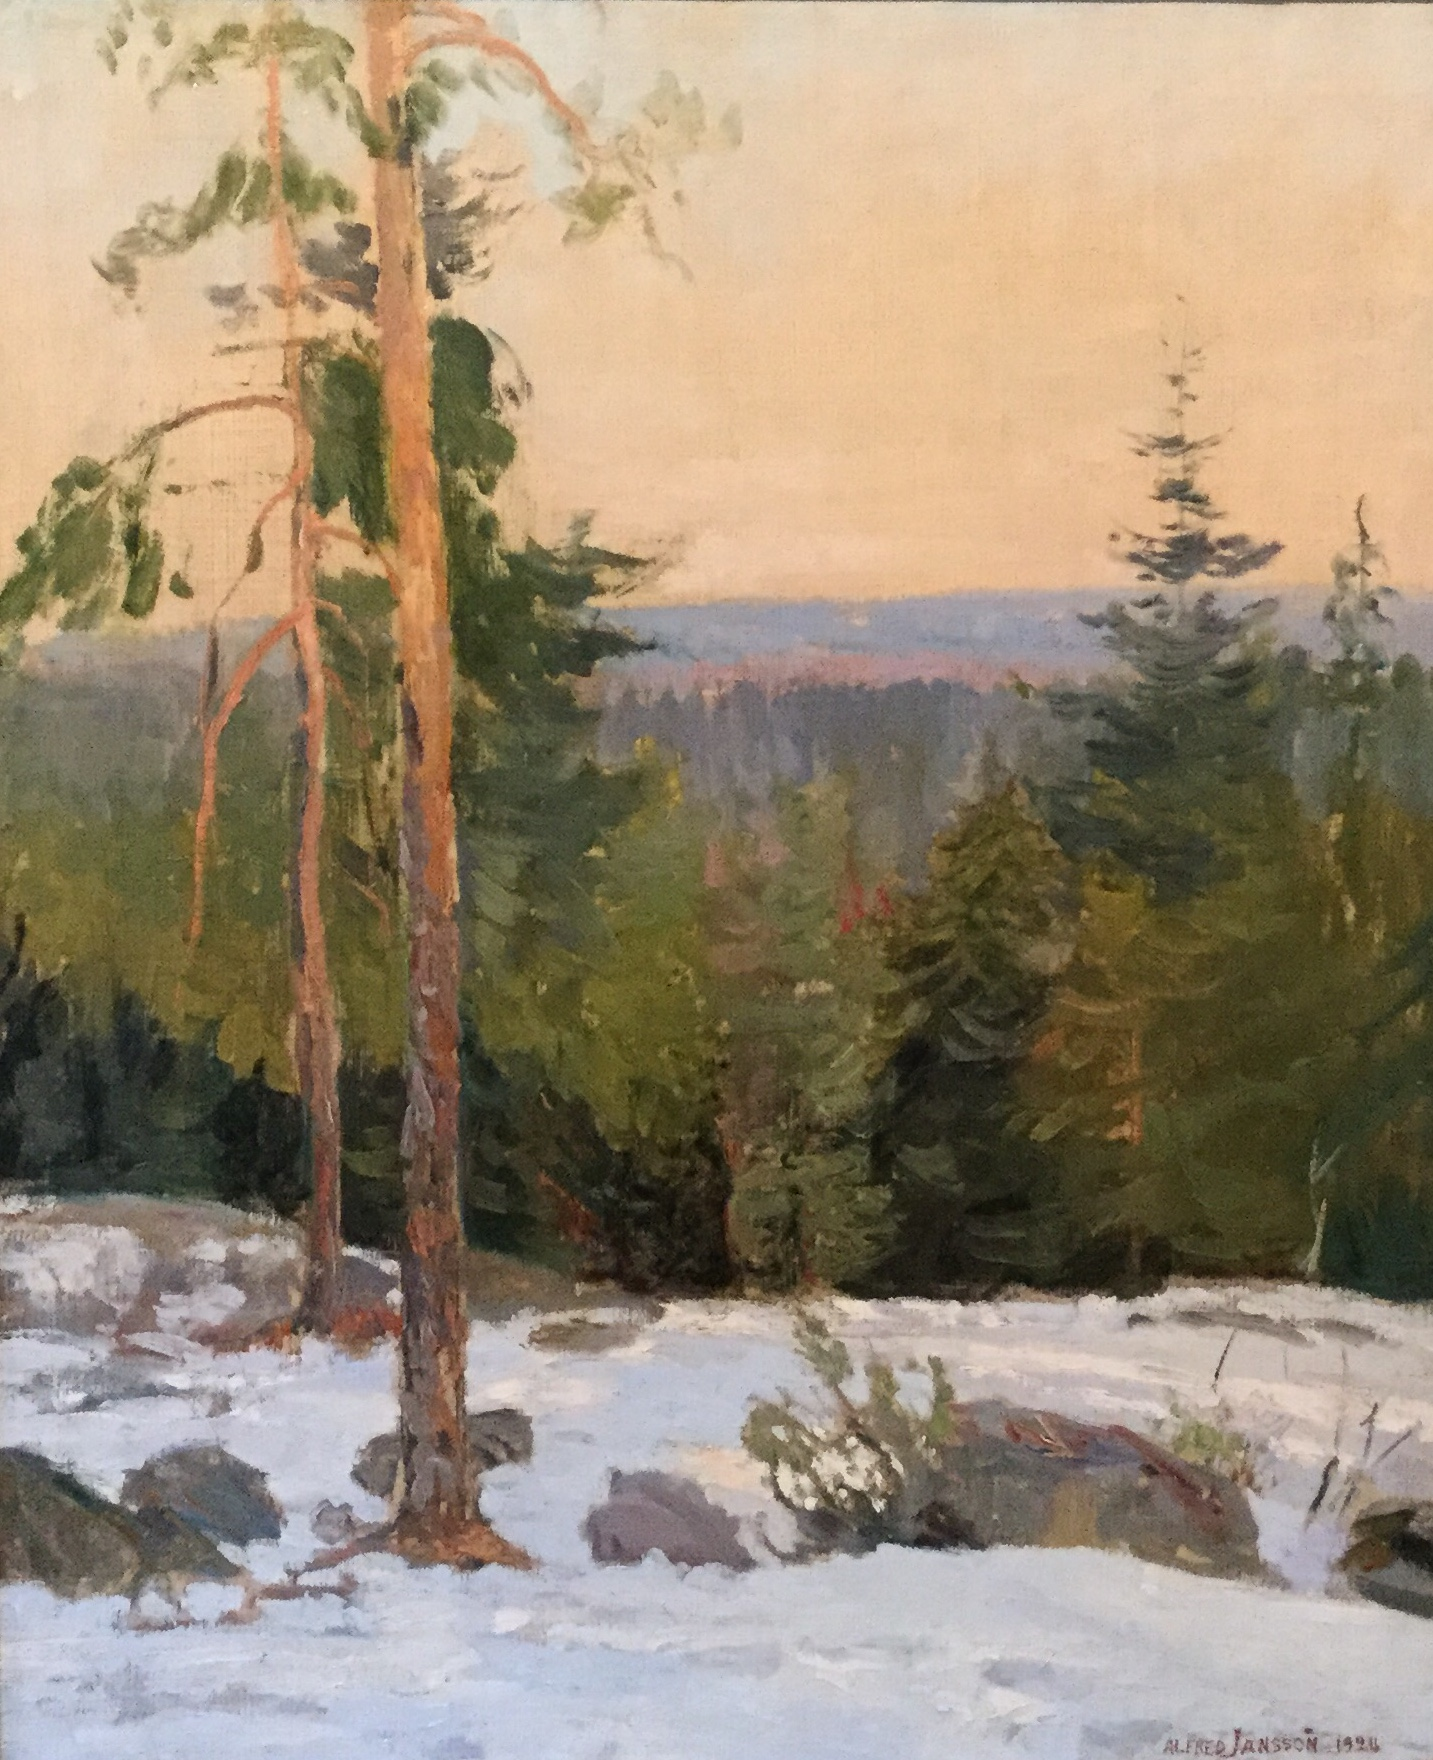 Winter Scene (The First Snow)